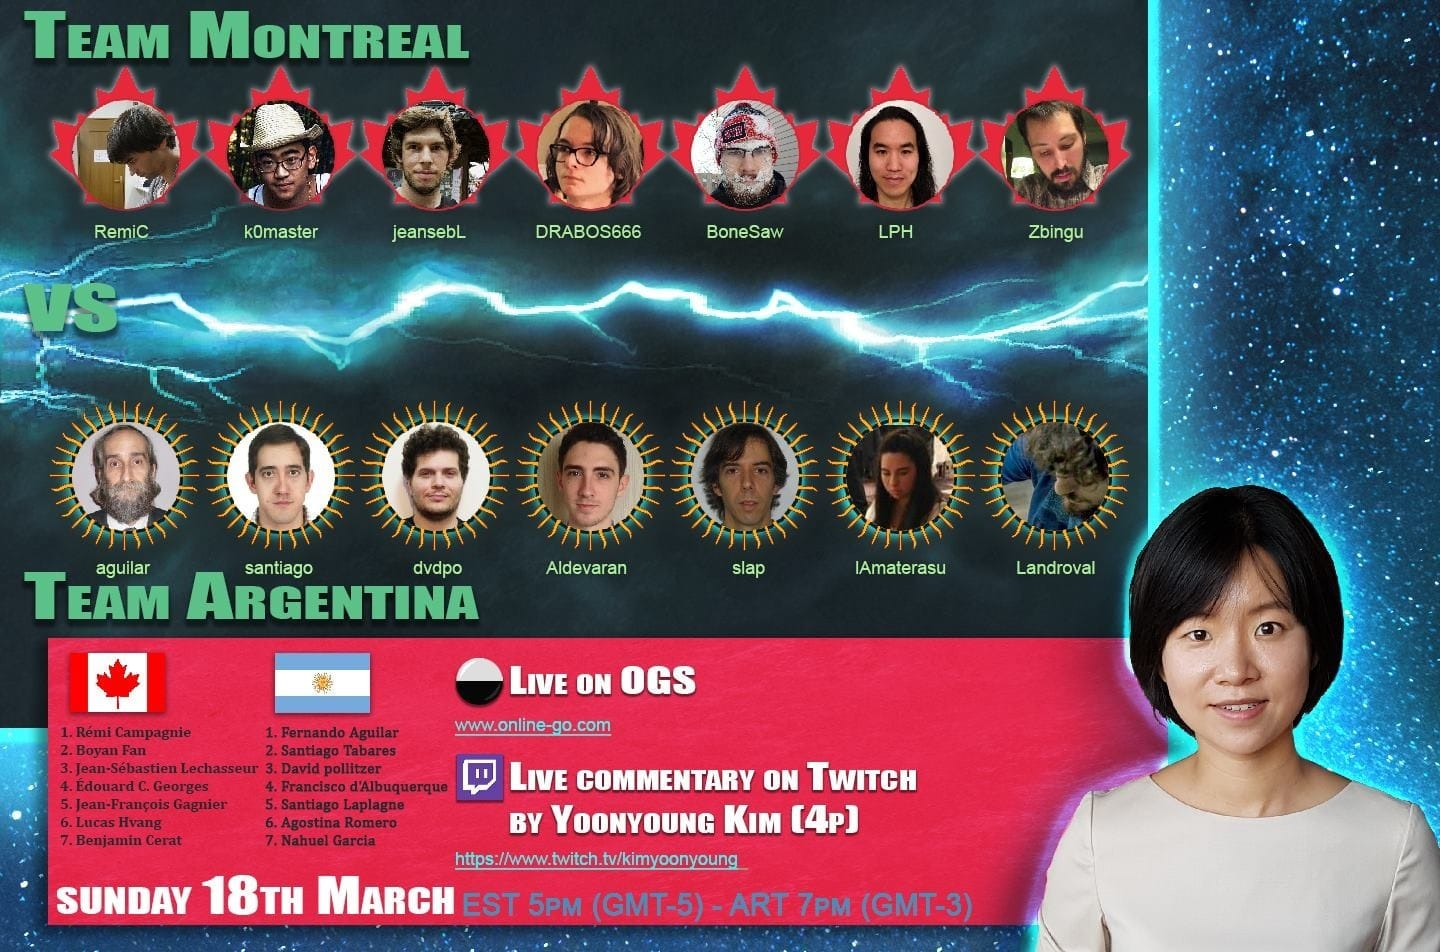 Match Amistoso: Argentina - Montreal 2018